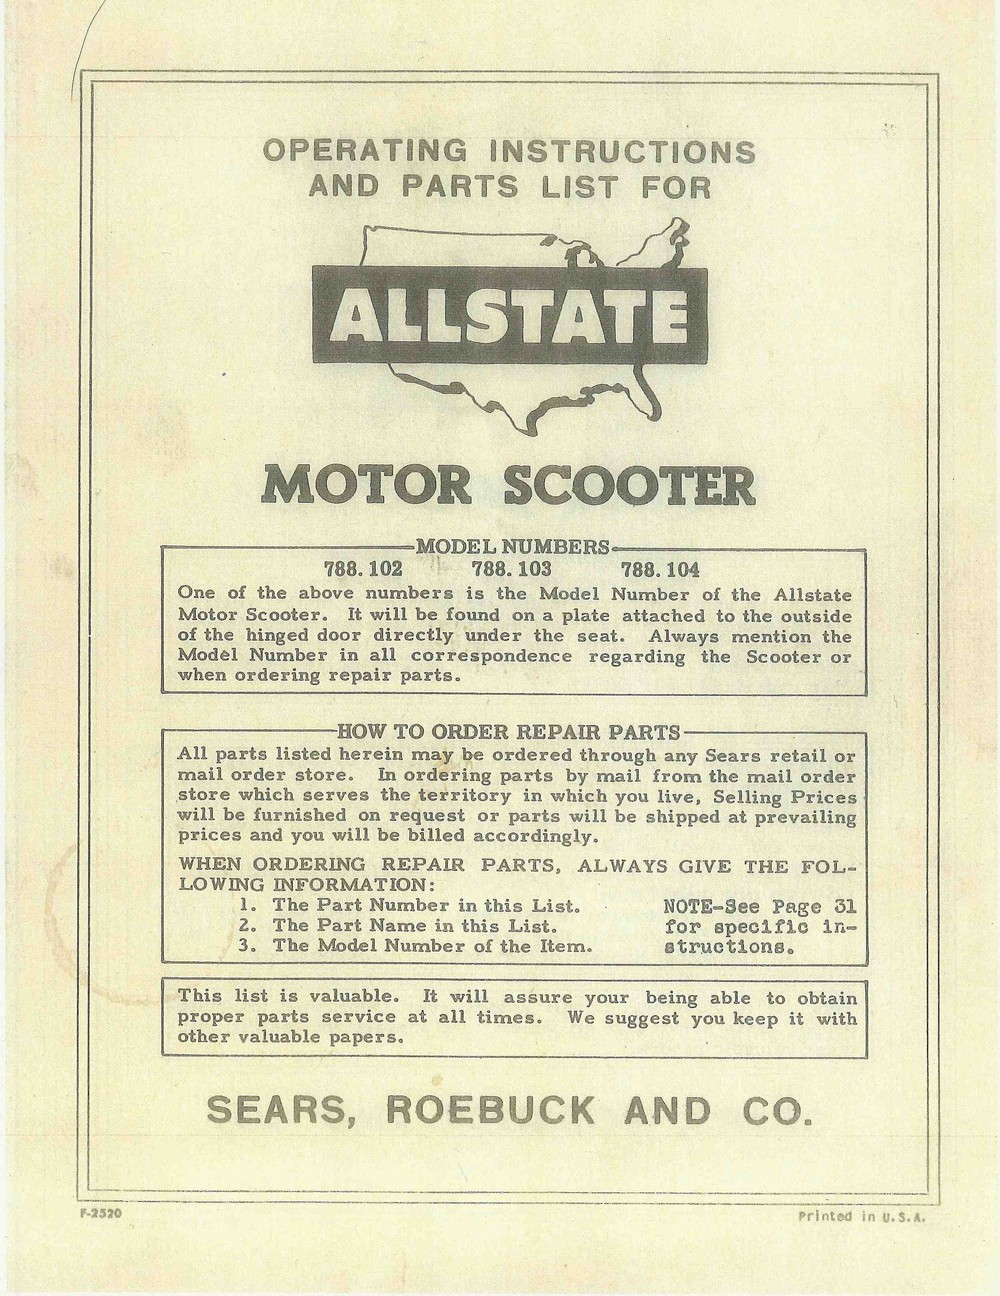 operating_instructions_and_parts_list_for_allstate_motor_scooter_788.102_788.103_788.104_788-102_788-103_788-104_vespa_sears.jpg